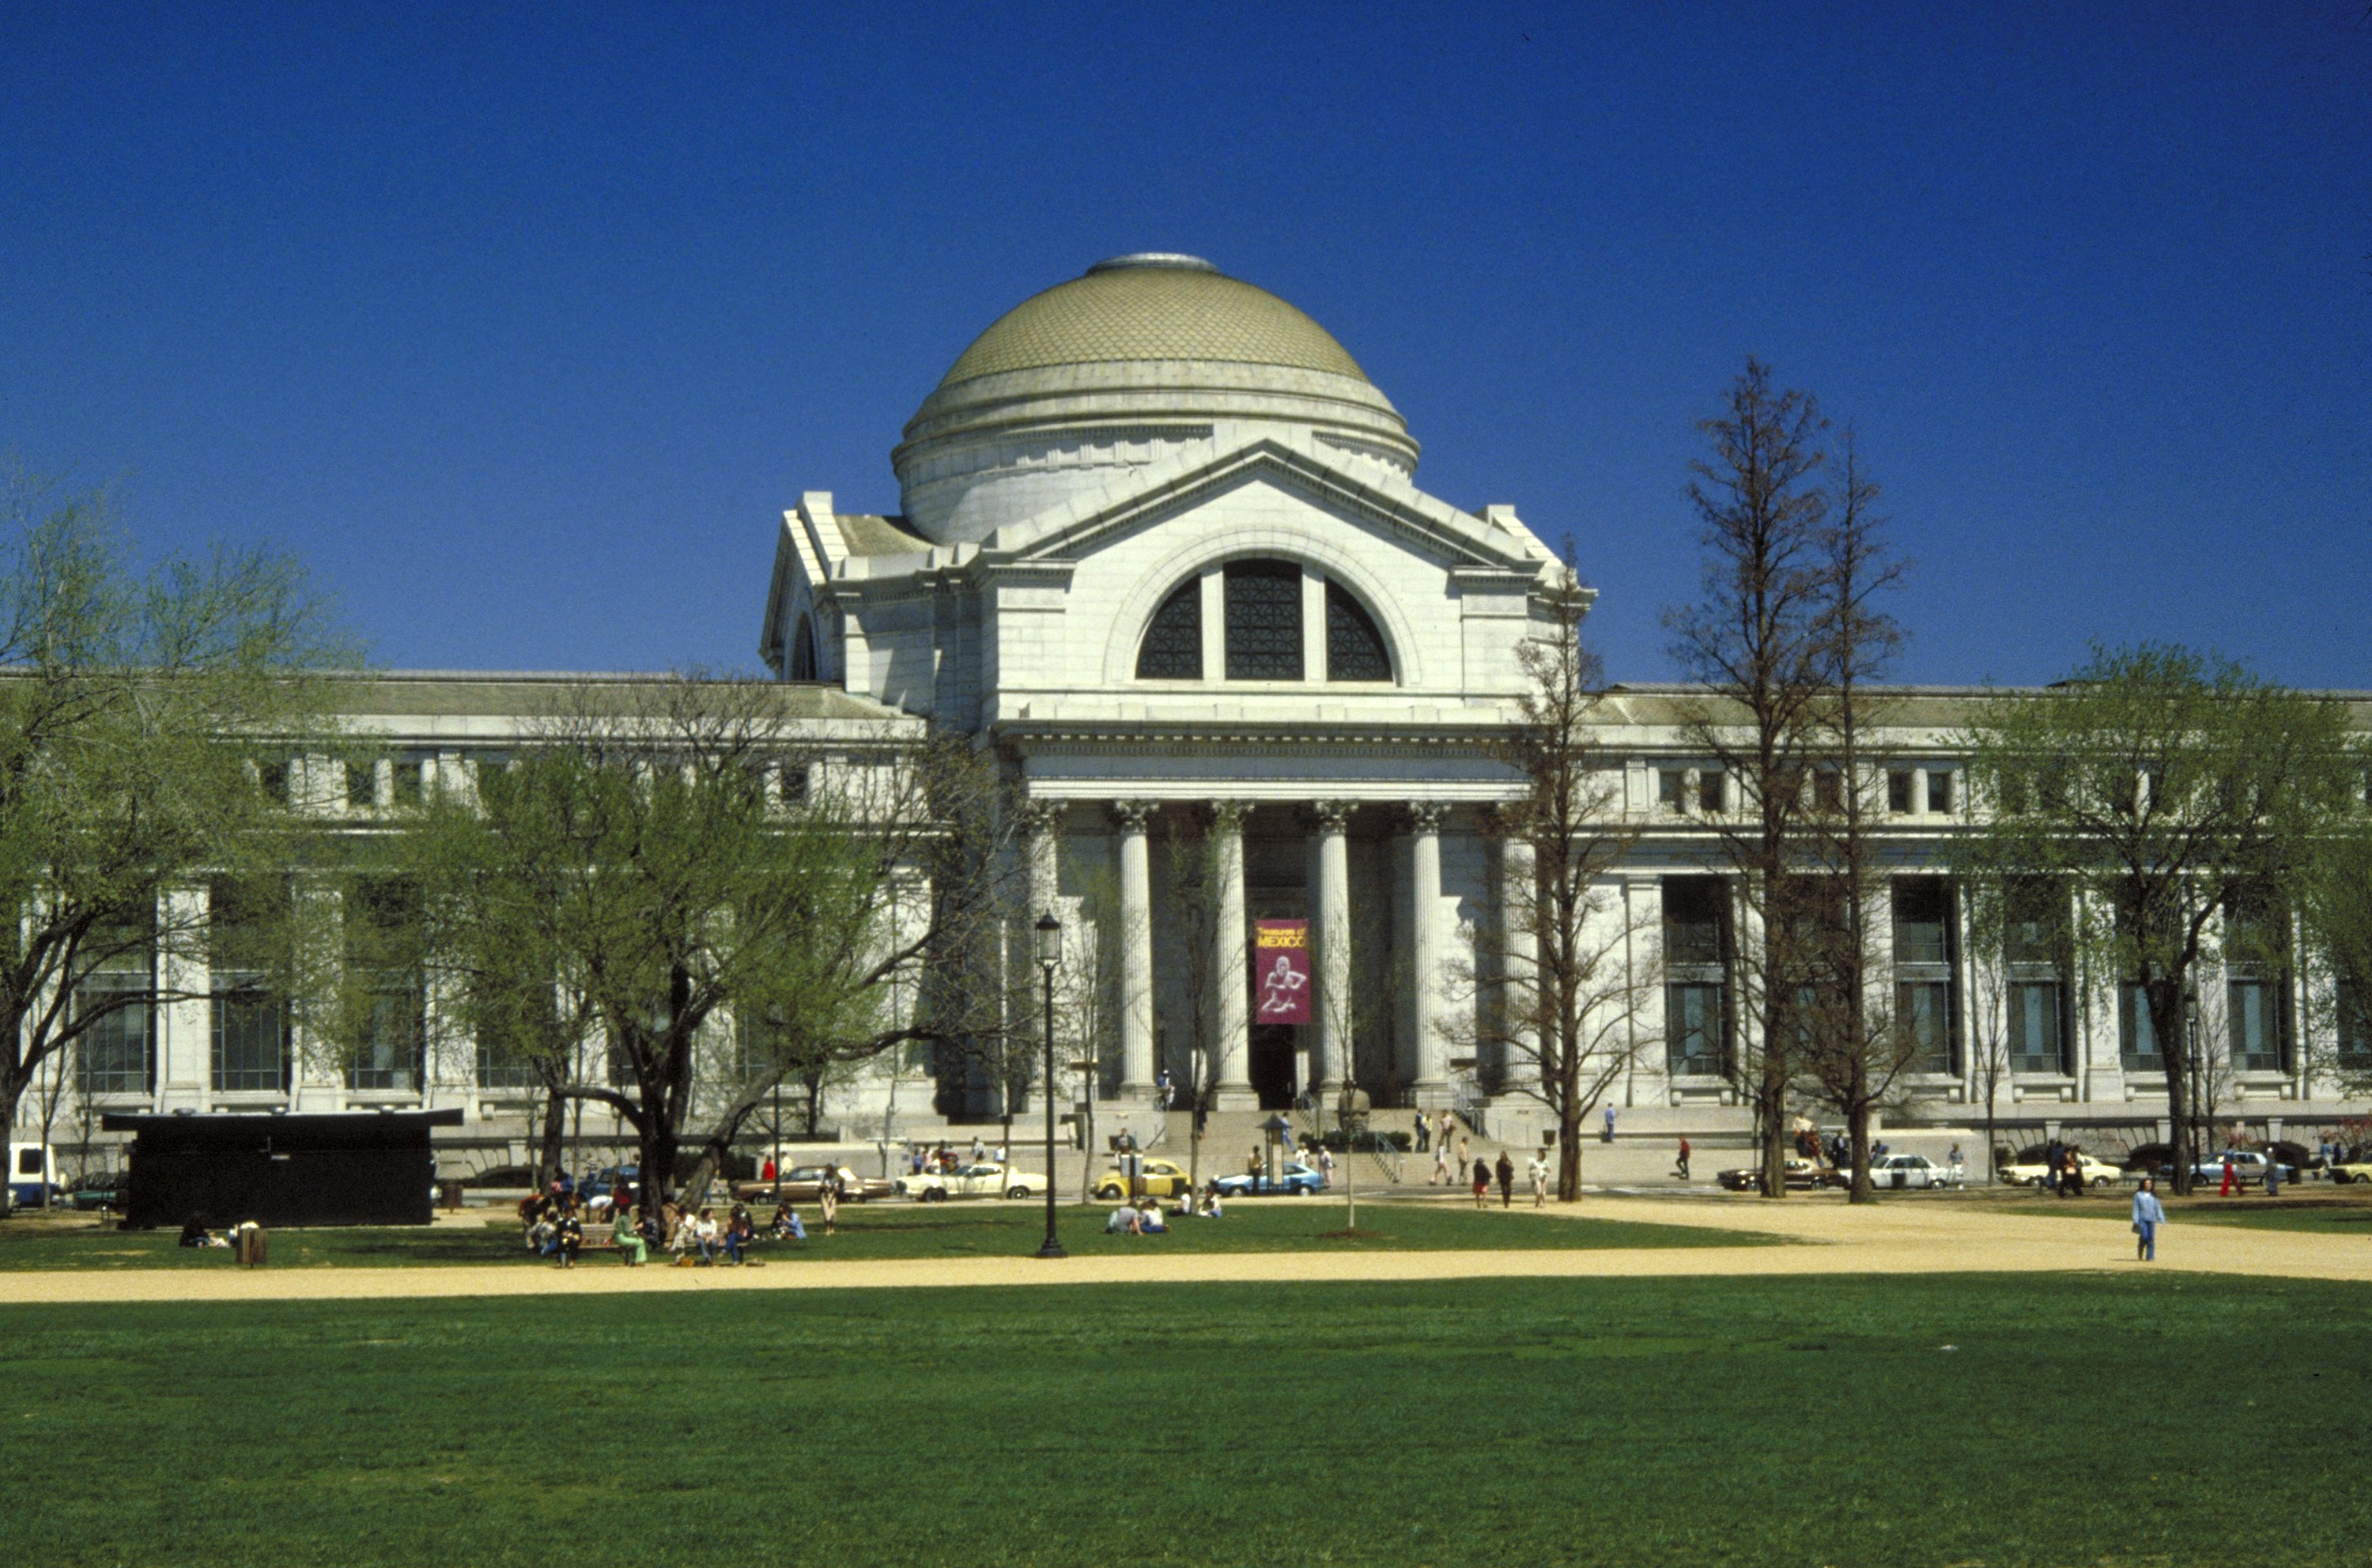 The National Museum of Natural History building was opened in 1910 and is designed in the neoclassical style.